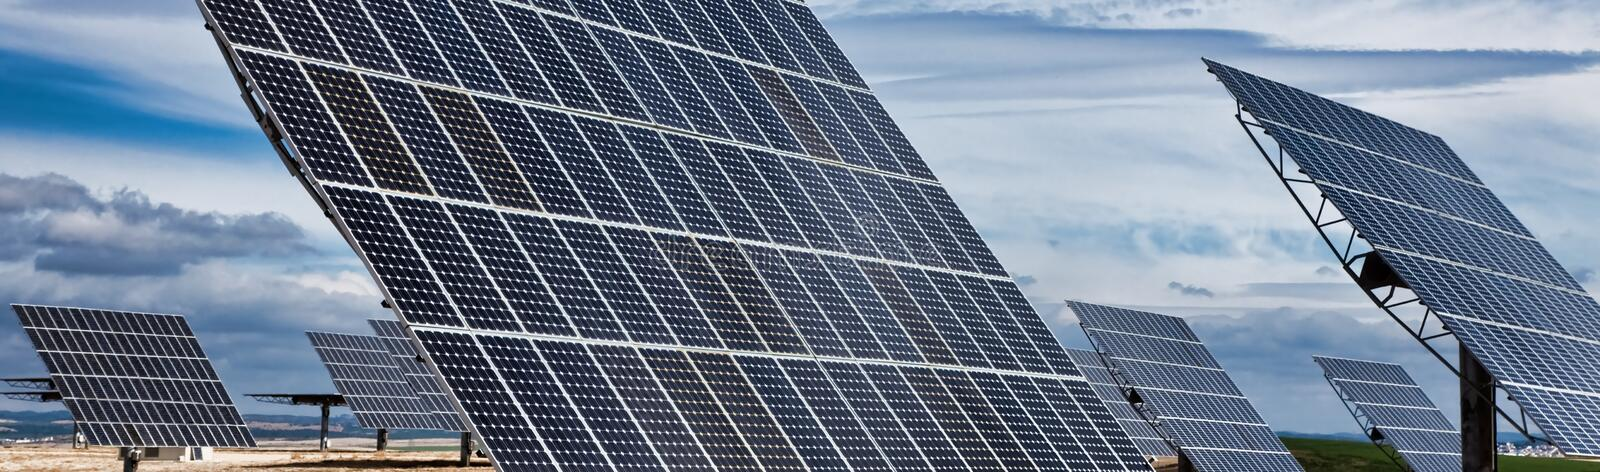 HDR Panorama of Green Energy Photovoltaic Solar Panels royalty free stock images